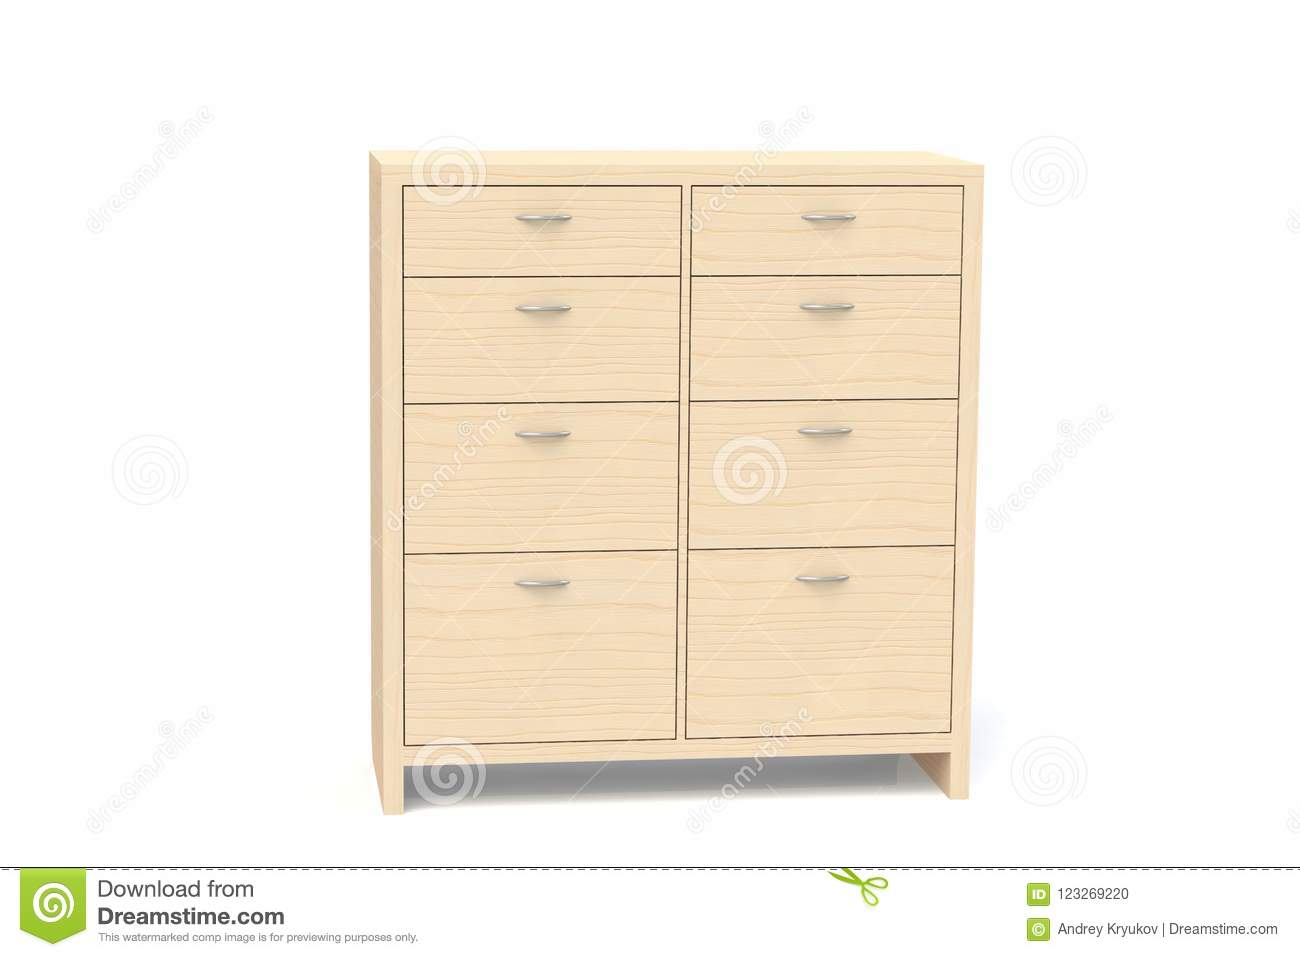 Wardrobe With Drawers For Clothes, Linen, Underwear, Children`s Clothes.  Wooden Chest Of Drawers. Office Furniture For Documents Storage.